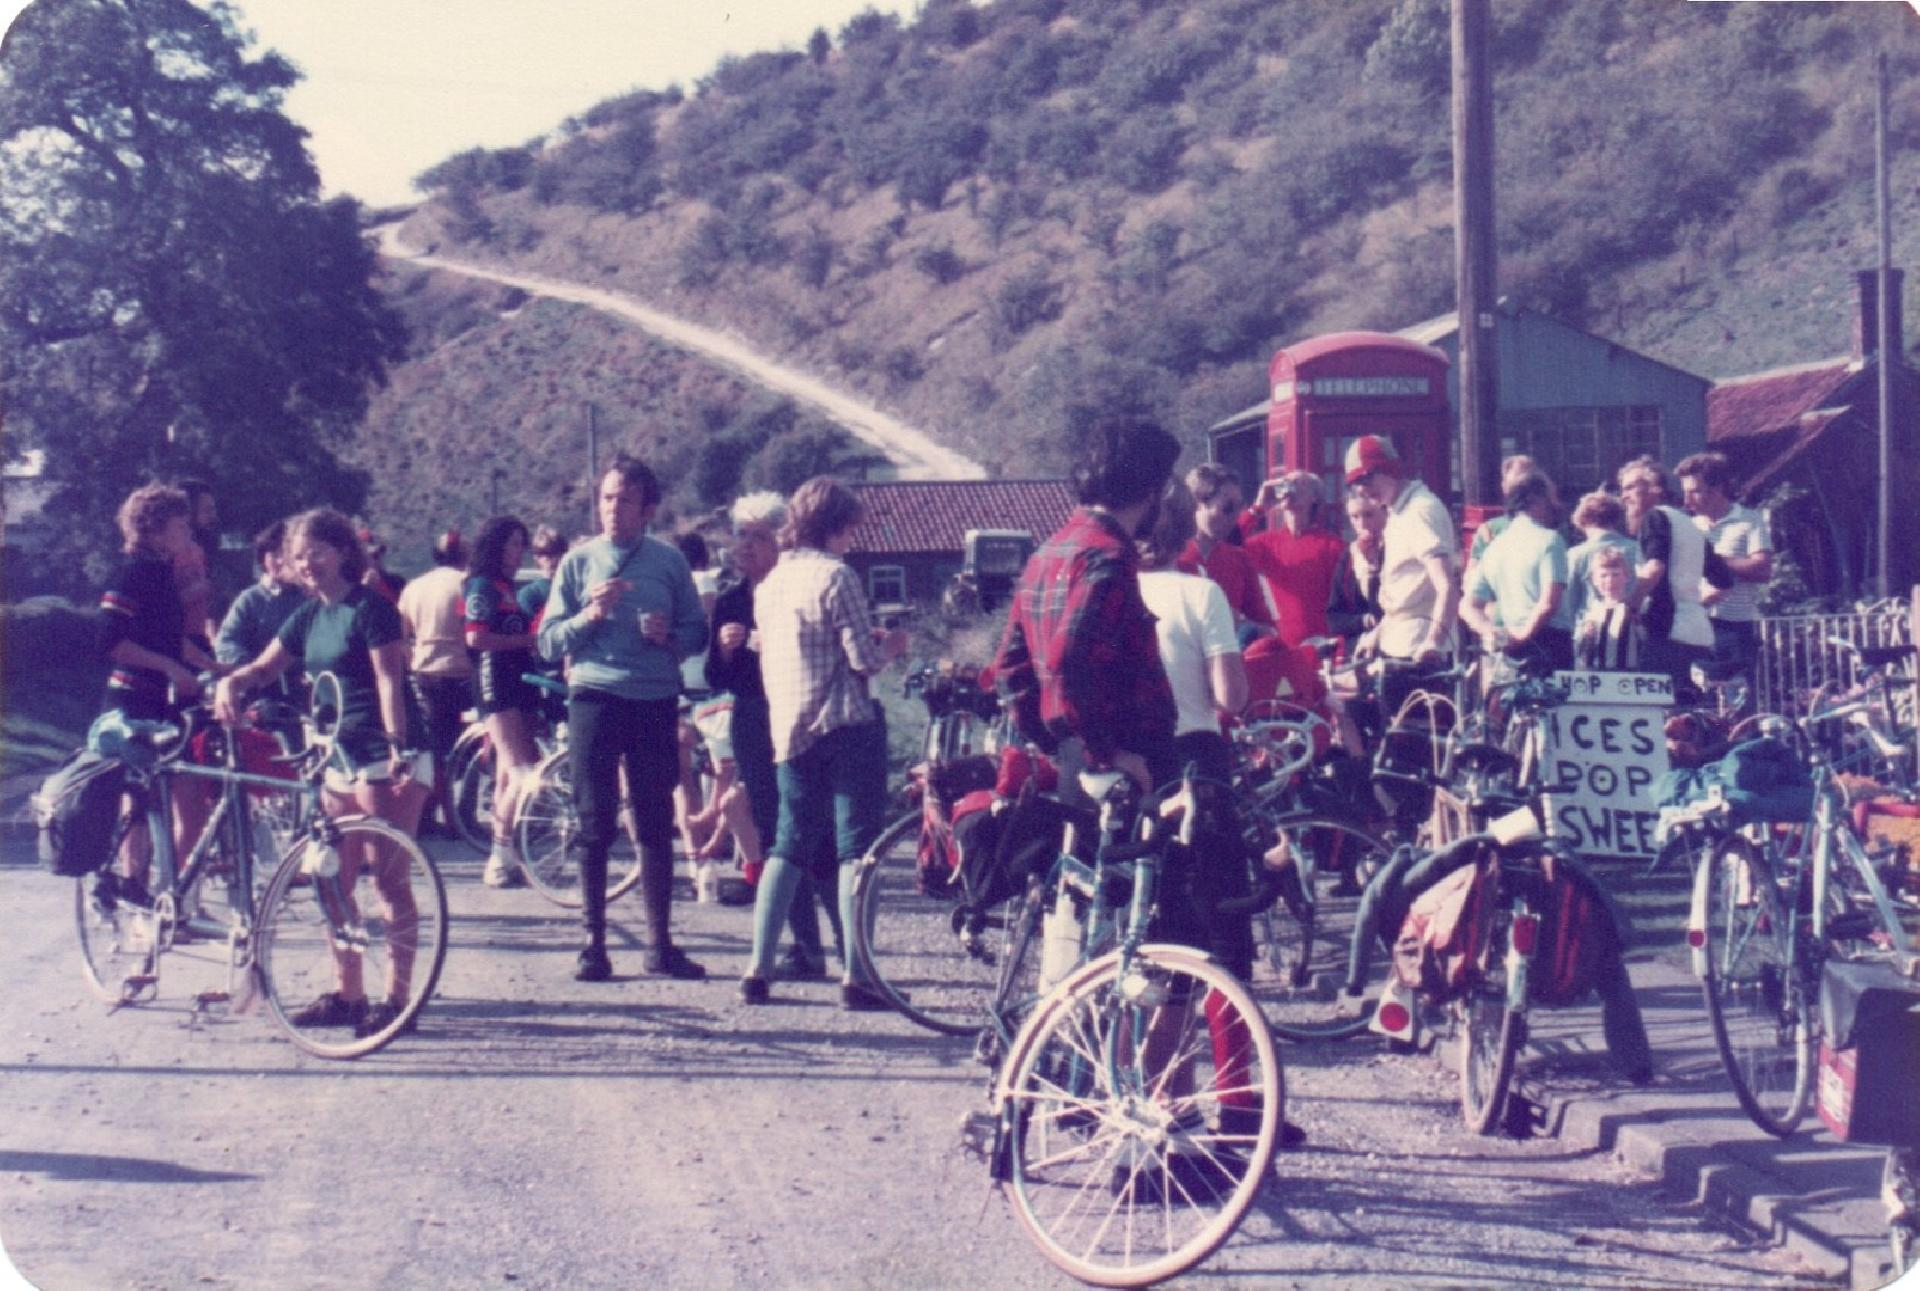 1982 - National at Slingsby